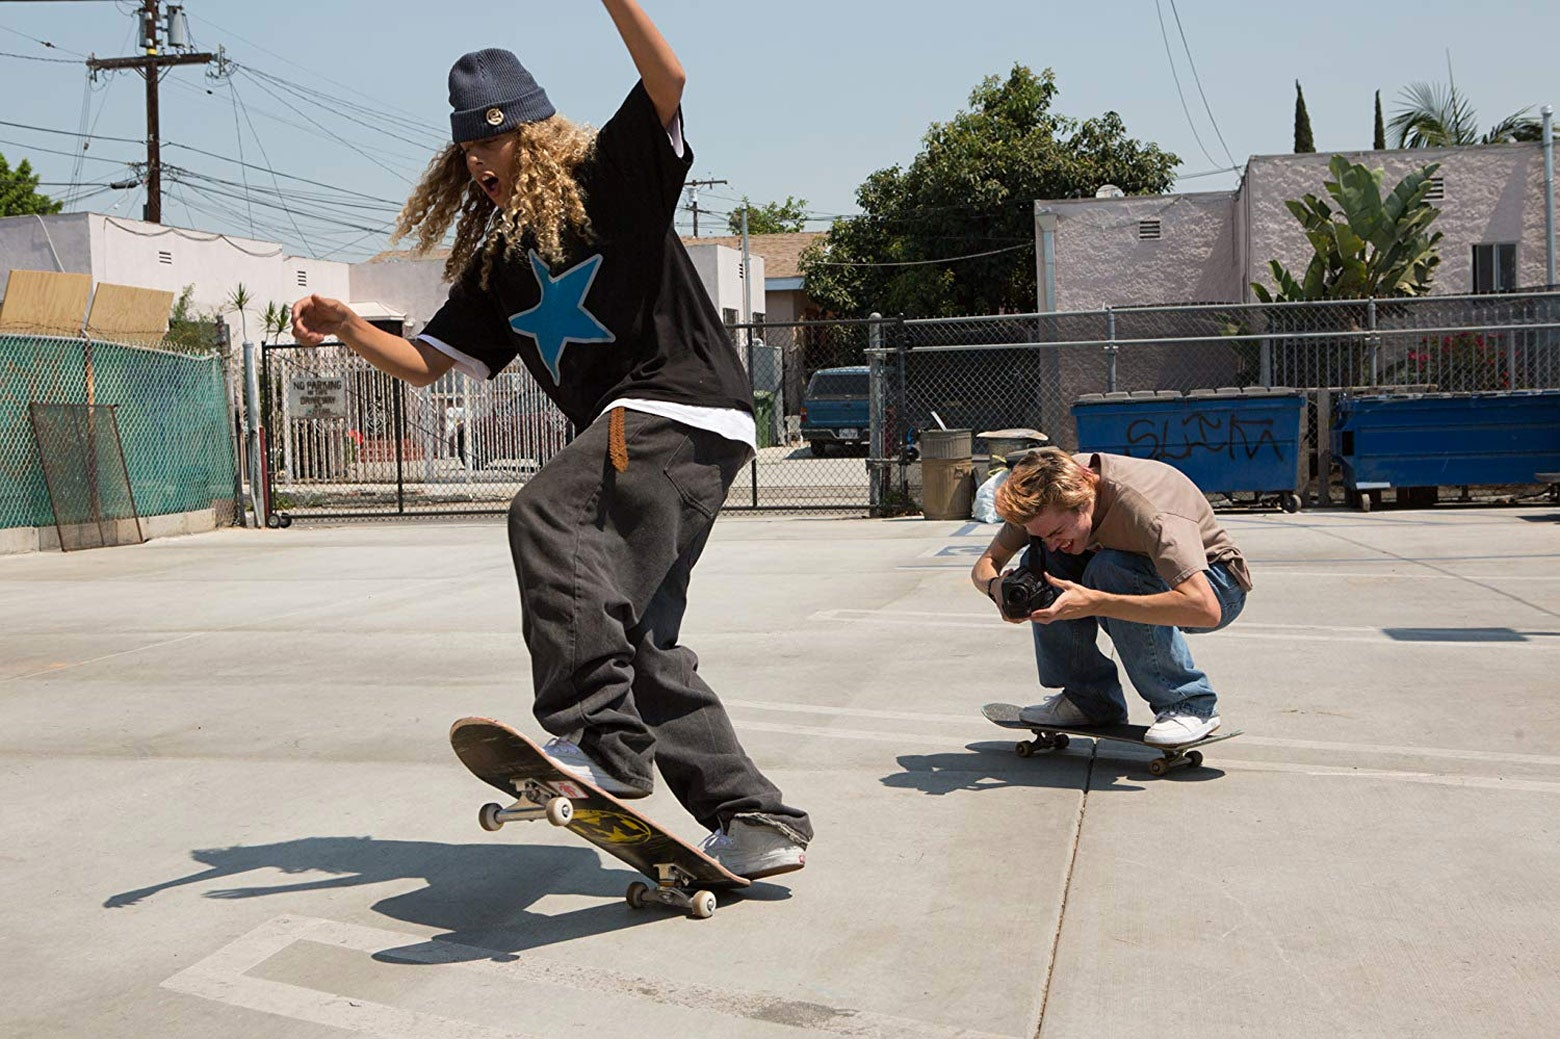 A kid films another kid on a skateboard.